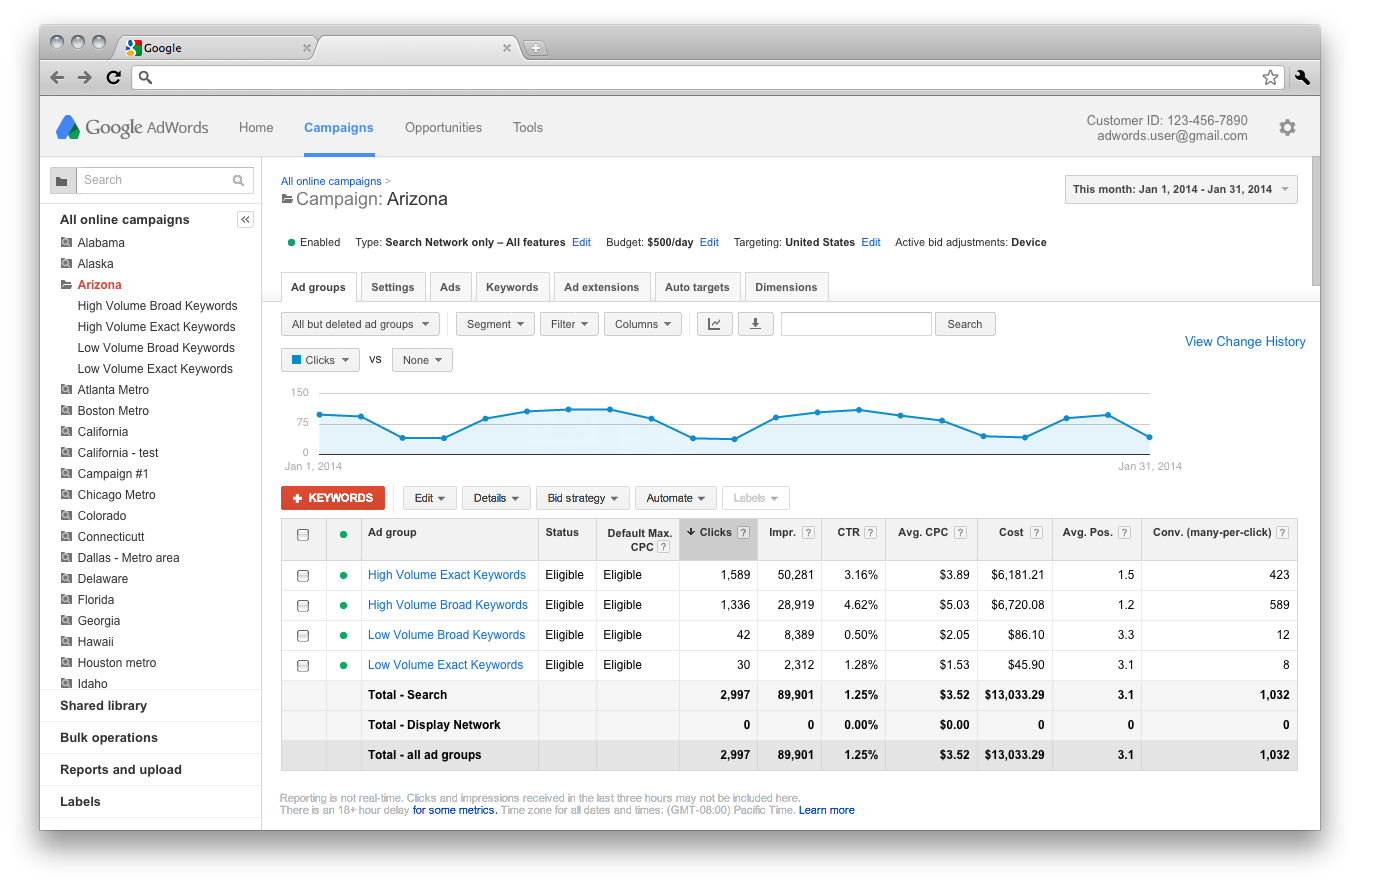 novo-interface-visual-adwords